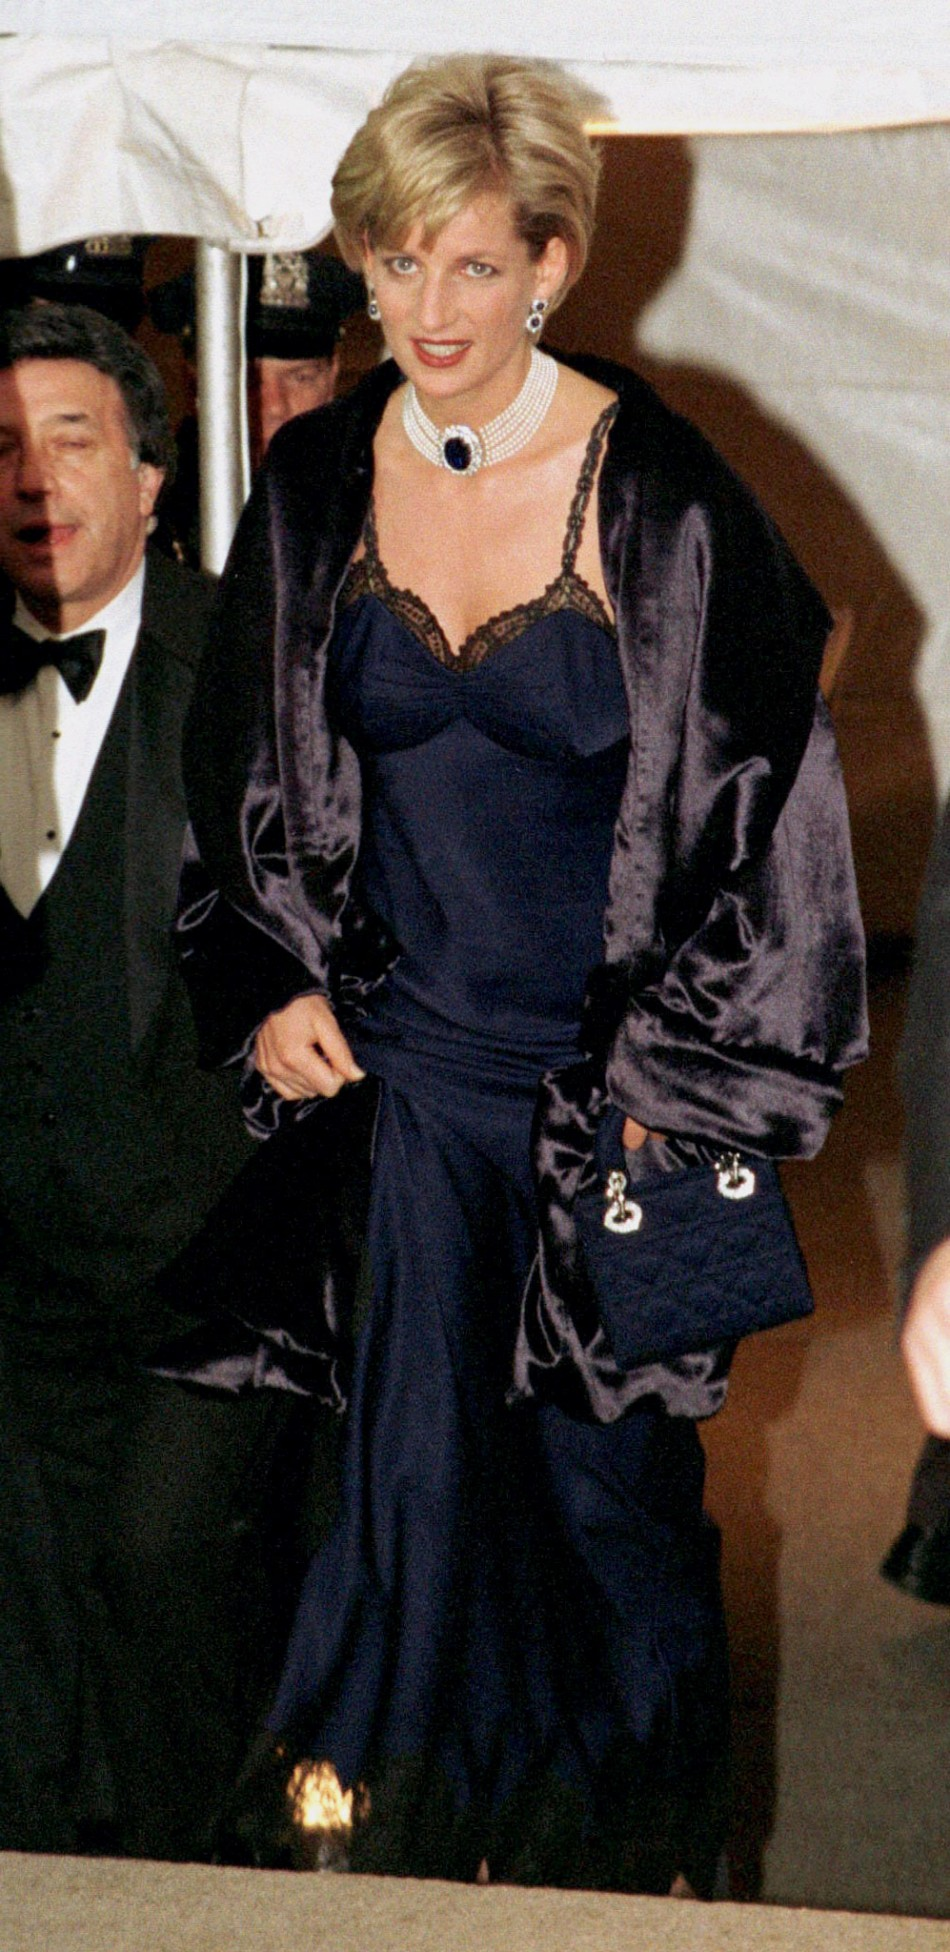 From Princess Diana To Blake Lively, The Met Costume Gala ...